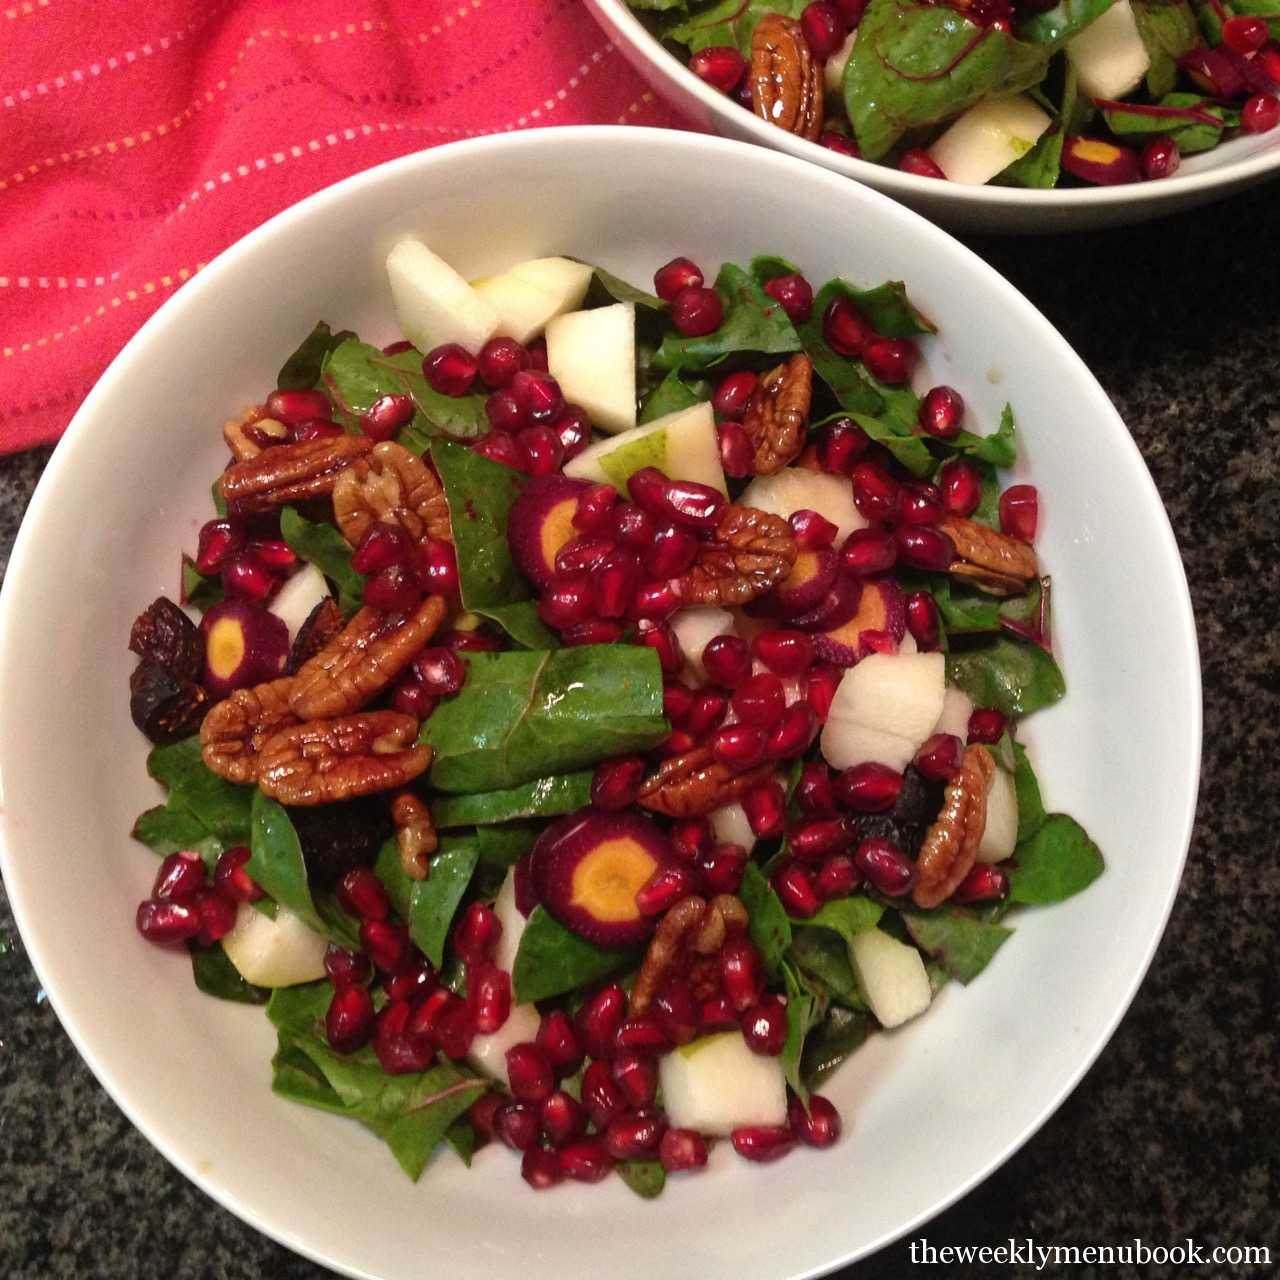 Chard Pom Salad with organic fruits and nuts - food choices for eating cleaner